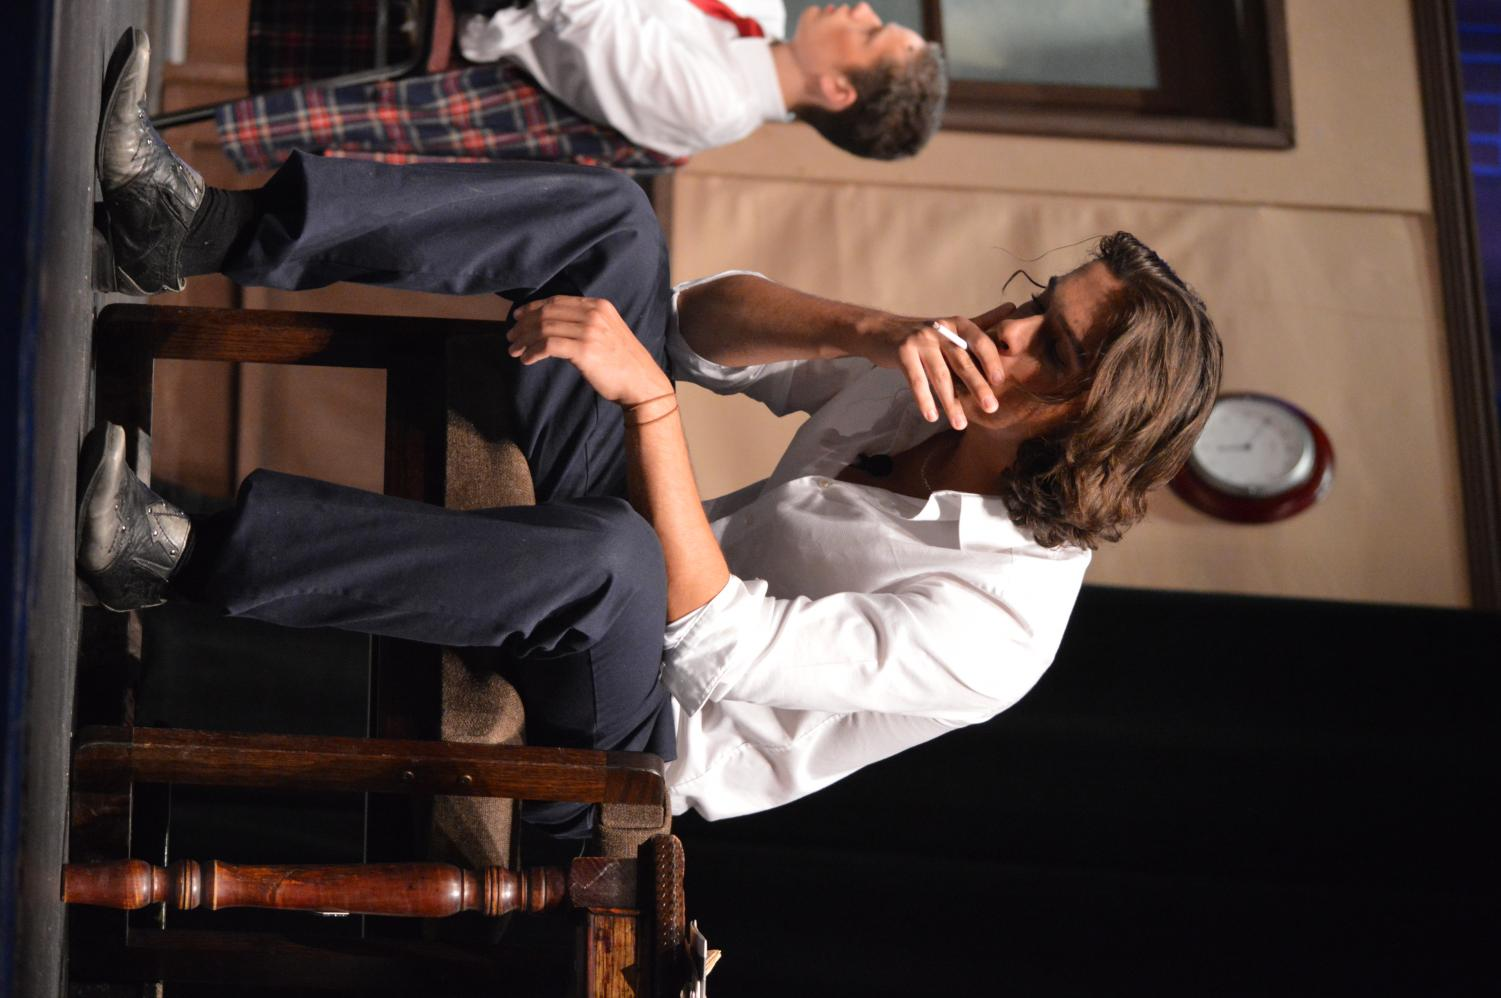 Delan Hafeed, junior, pretends to smoke during the play.